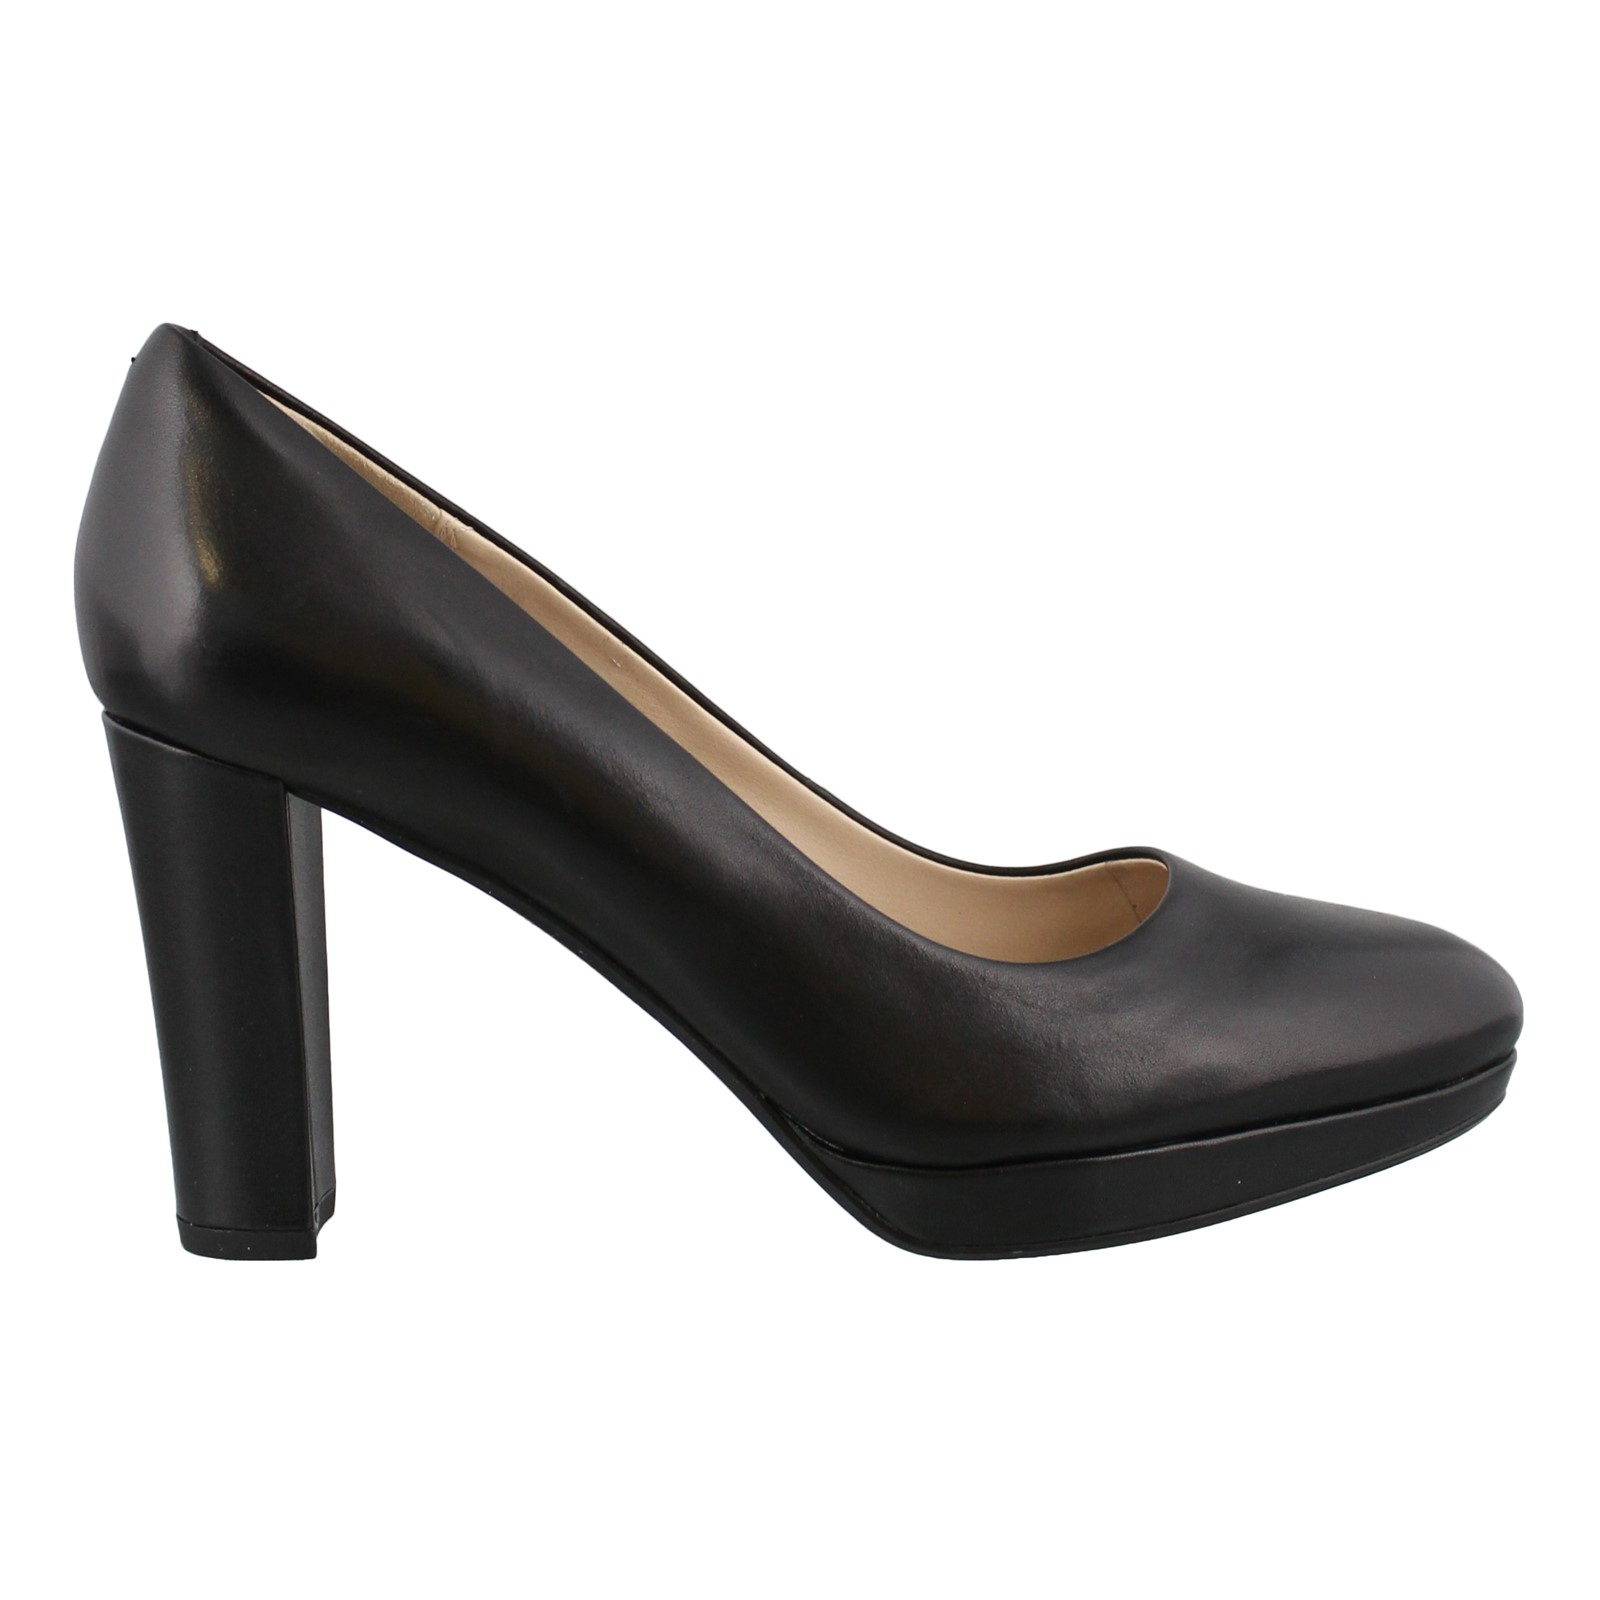 Women's Clarks, Kendra Sienna High Heel Pumps